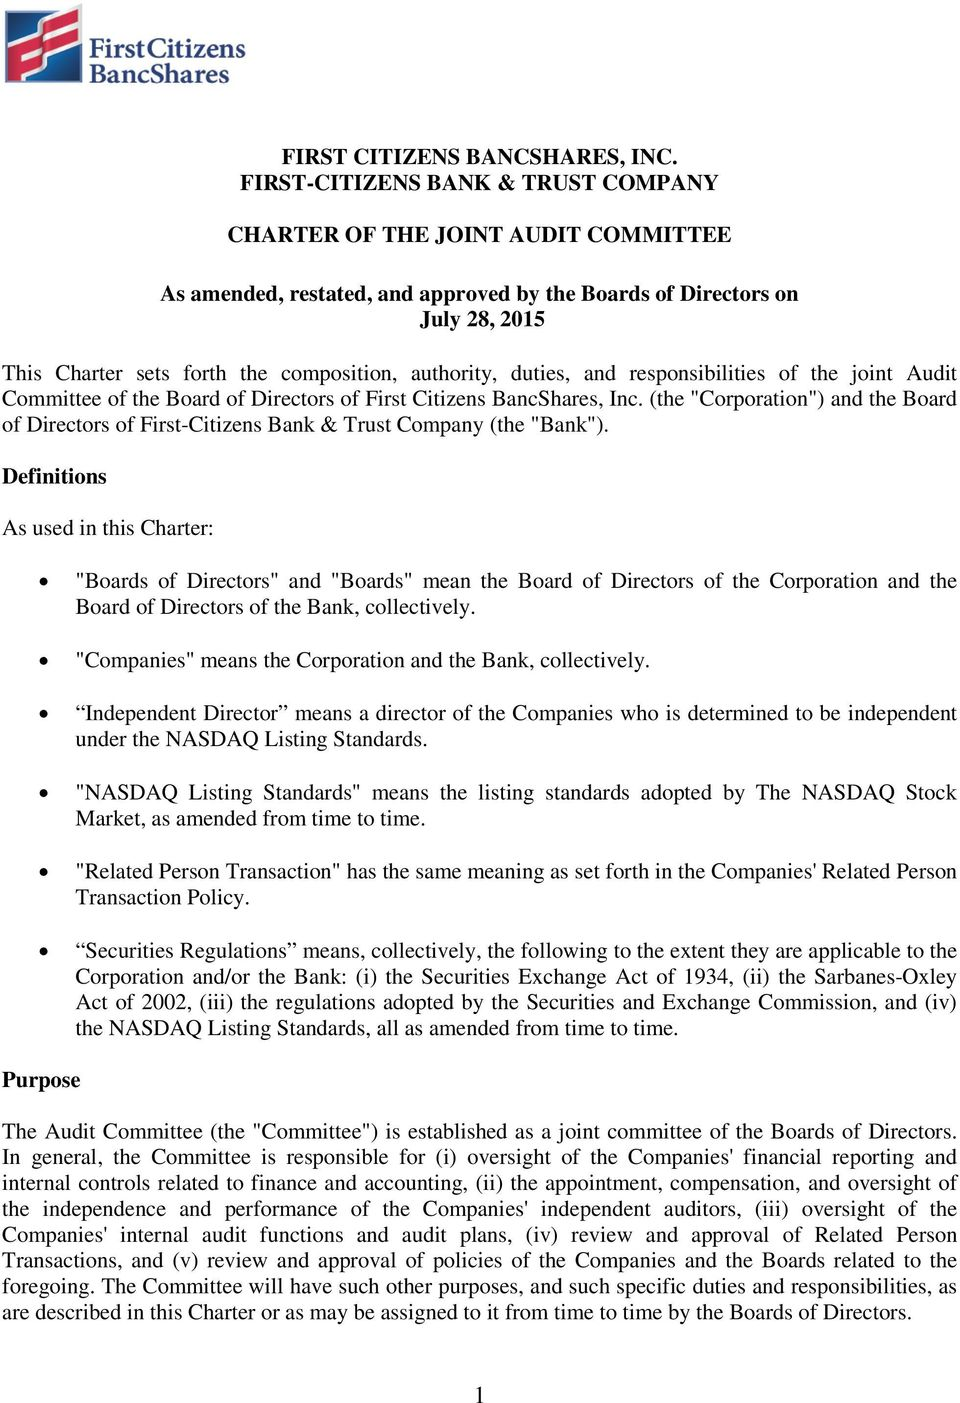 authority, duties, and responsibilities of the joint Audit Committee of the Board of Directors of First Citizens BancShares, Inc.